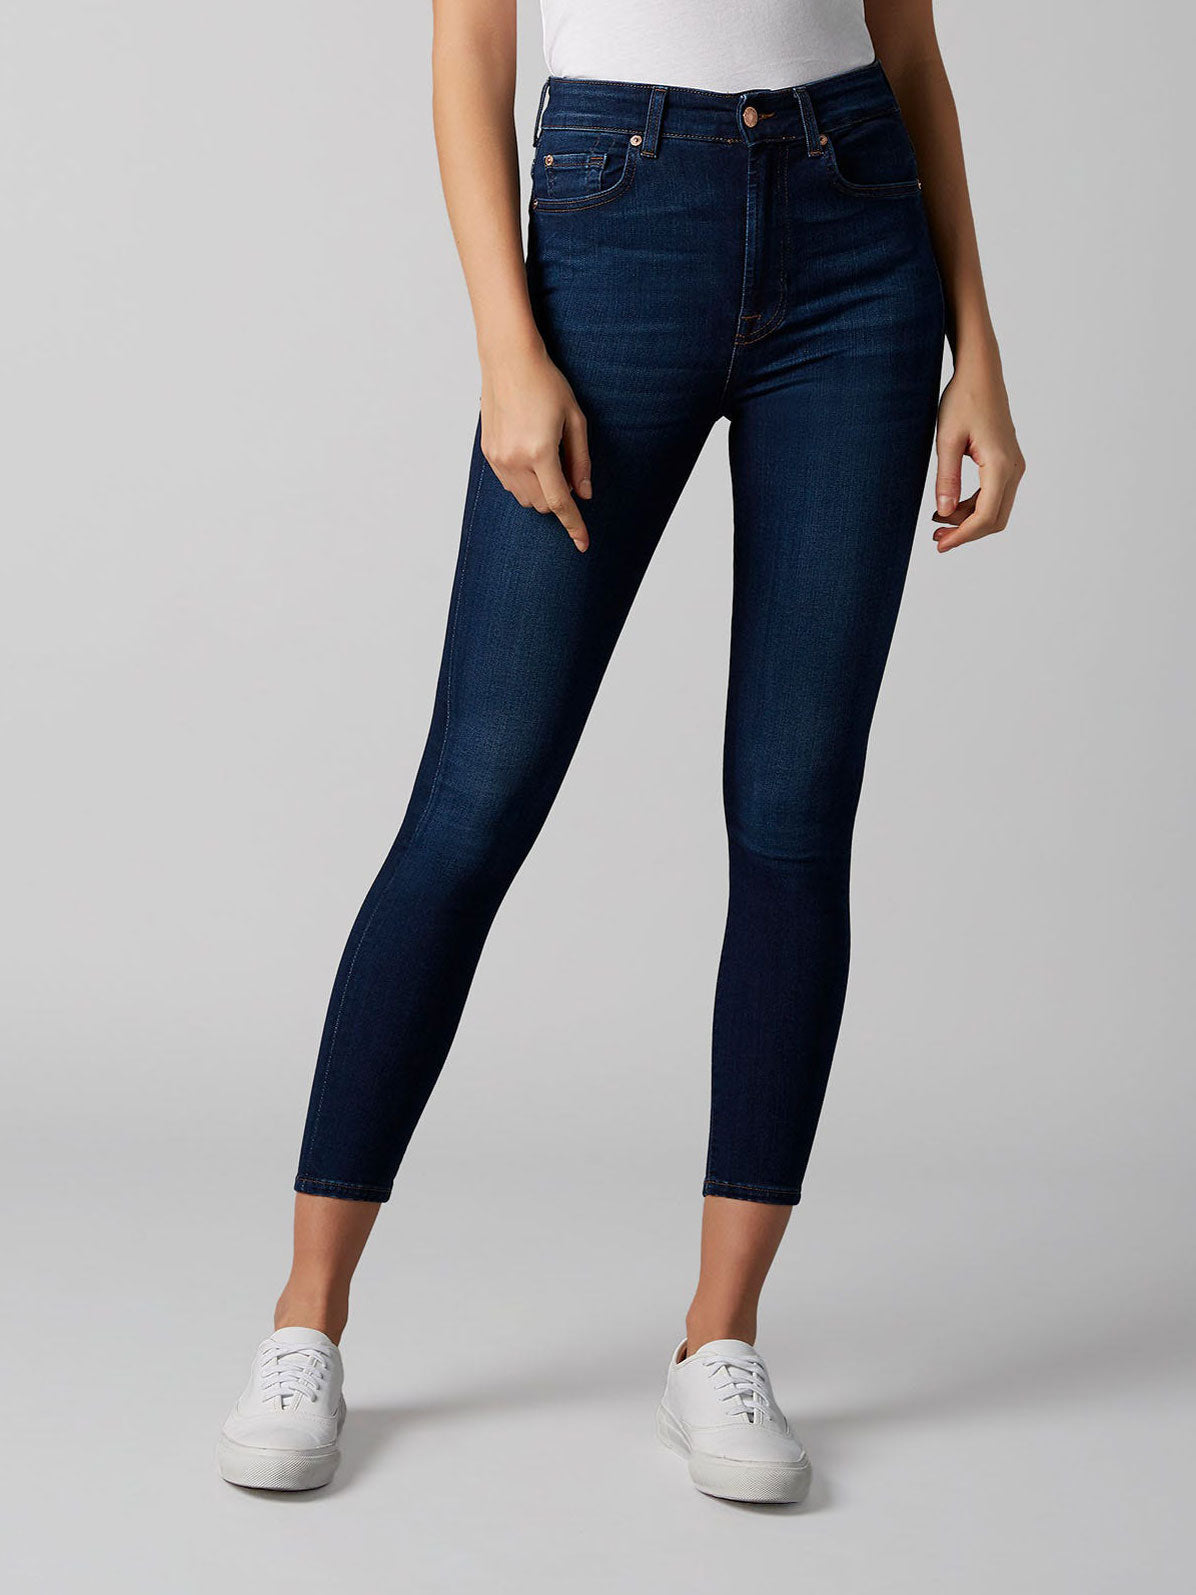 7 For All Mankind Aubrey Skinny Jeans Dark Blue